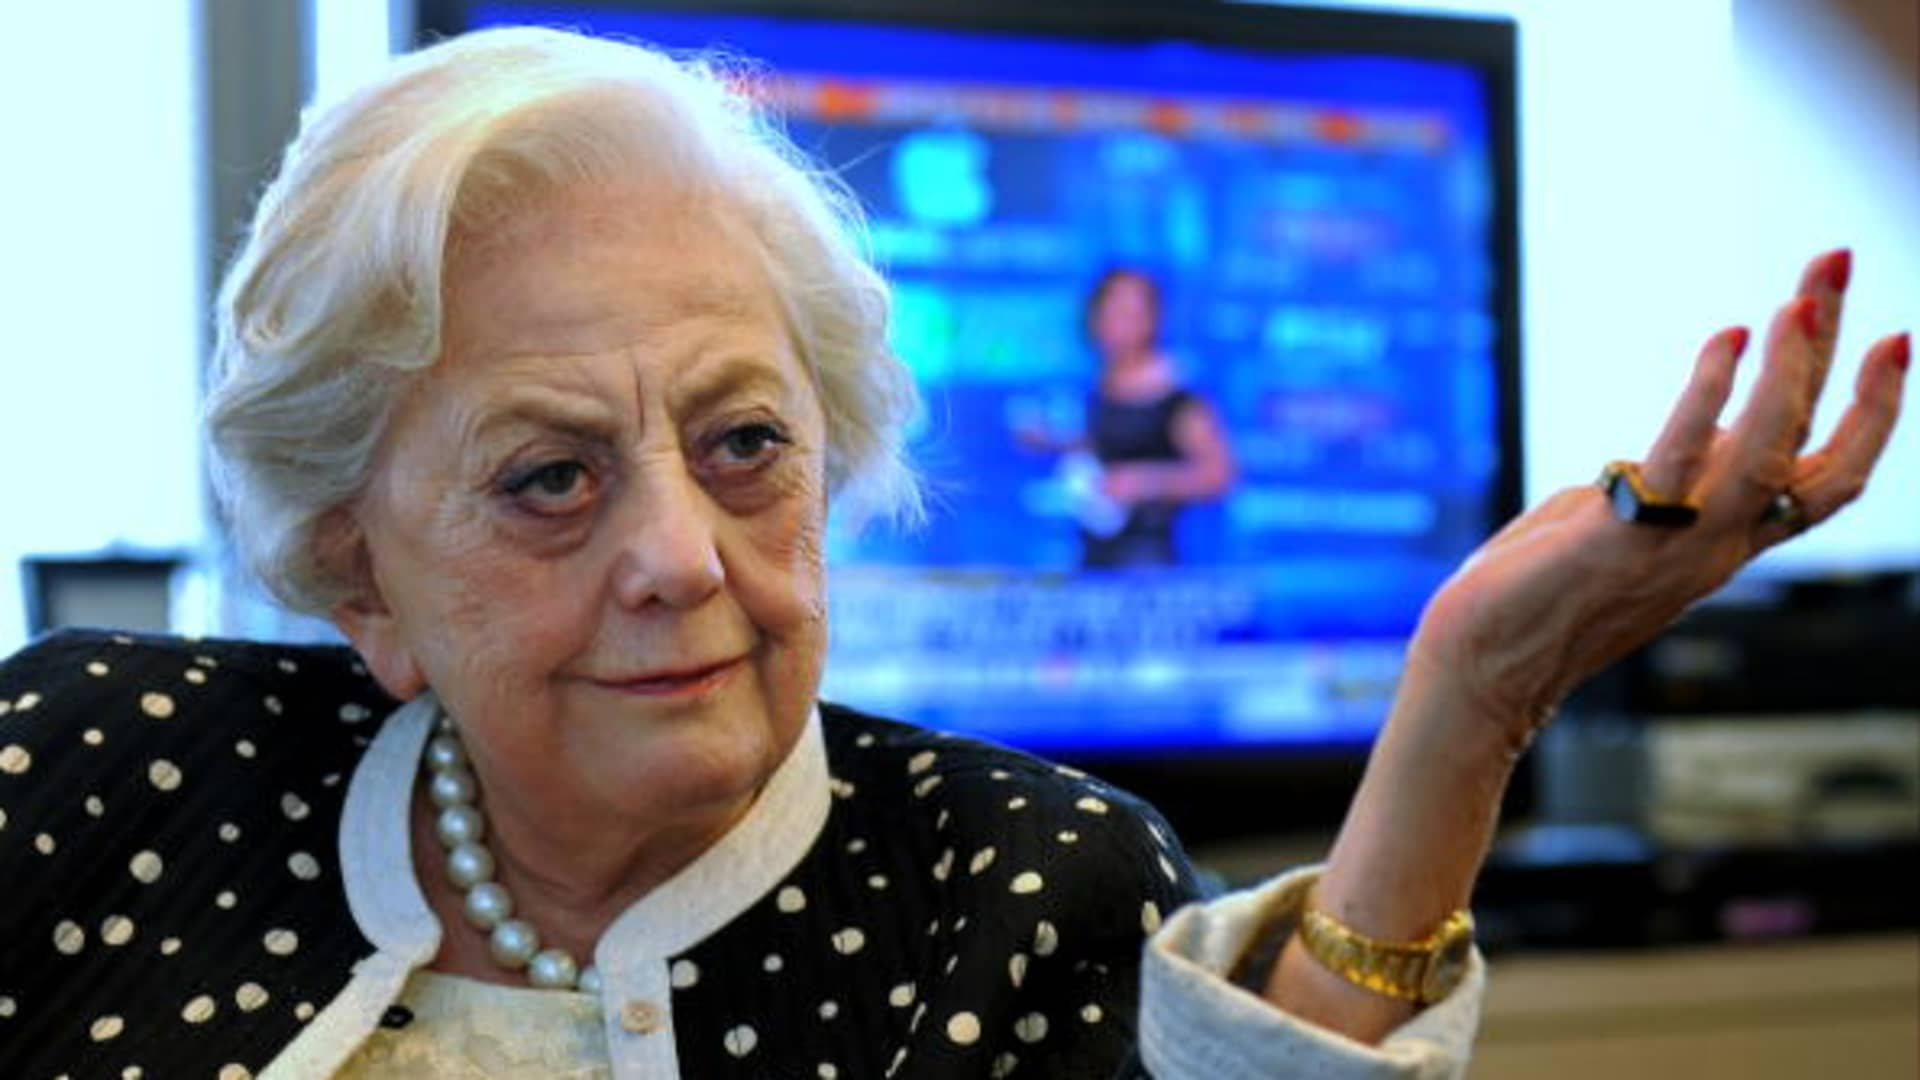 Muriel Siebert, the first woman to ever hold a seat on the New York Stock Exchange.